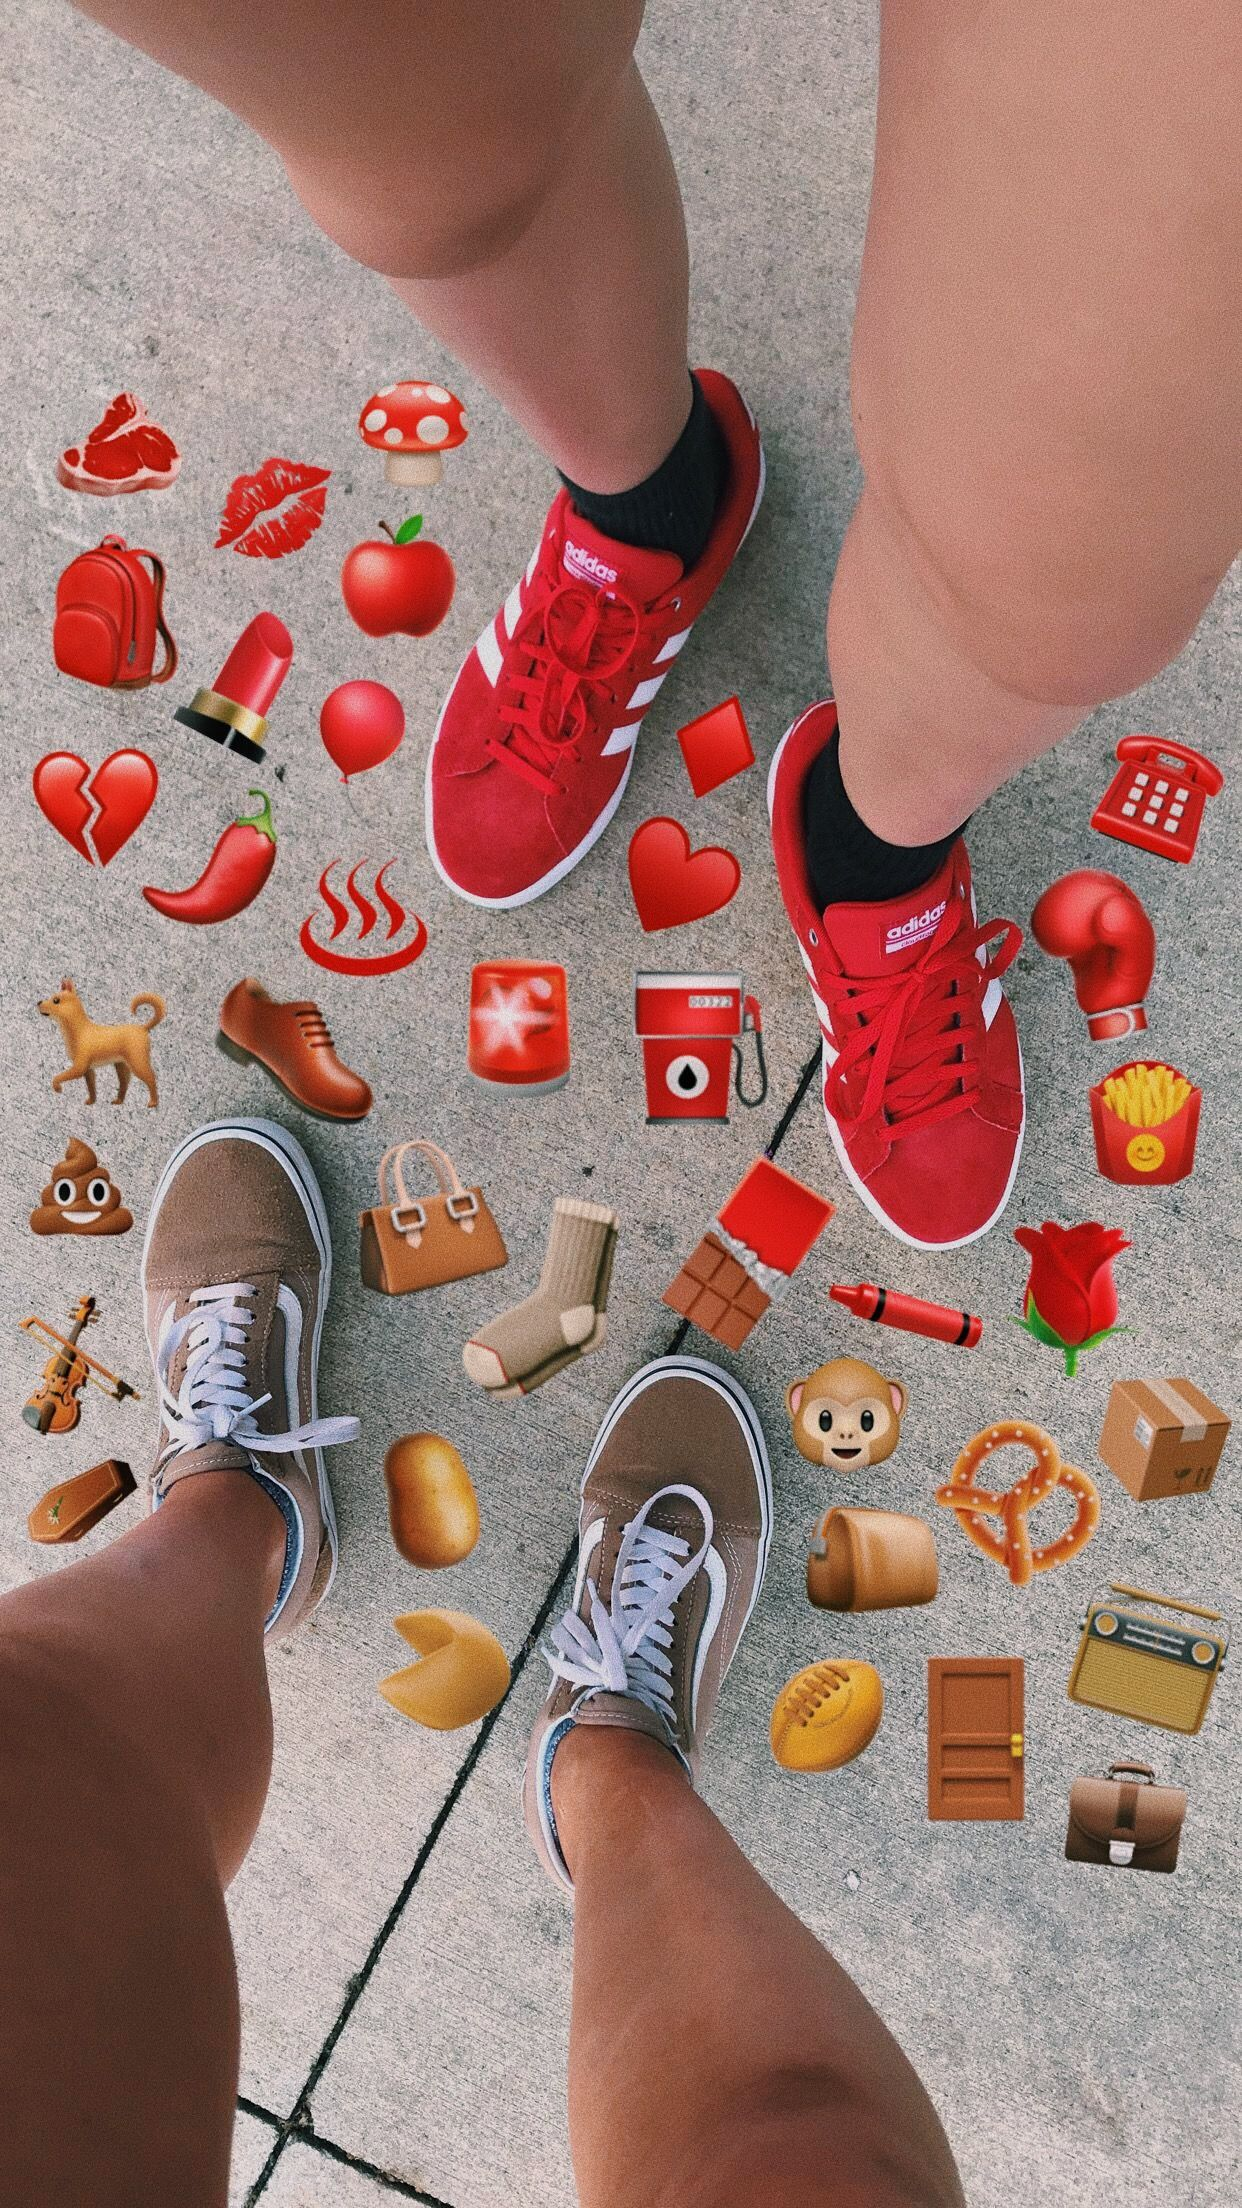 red v brown | inspire | Emoji pictures, Emoji wallpaper